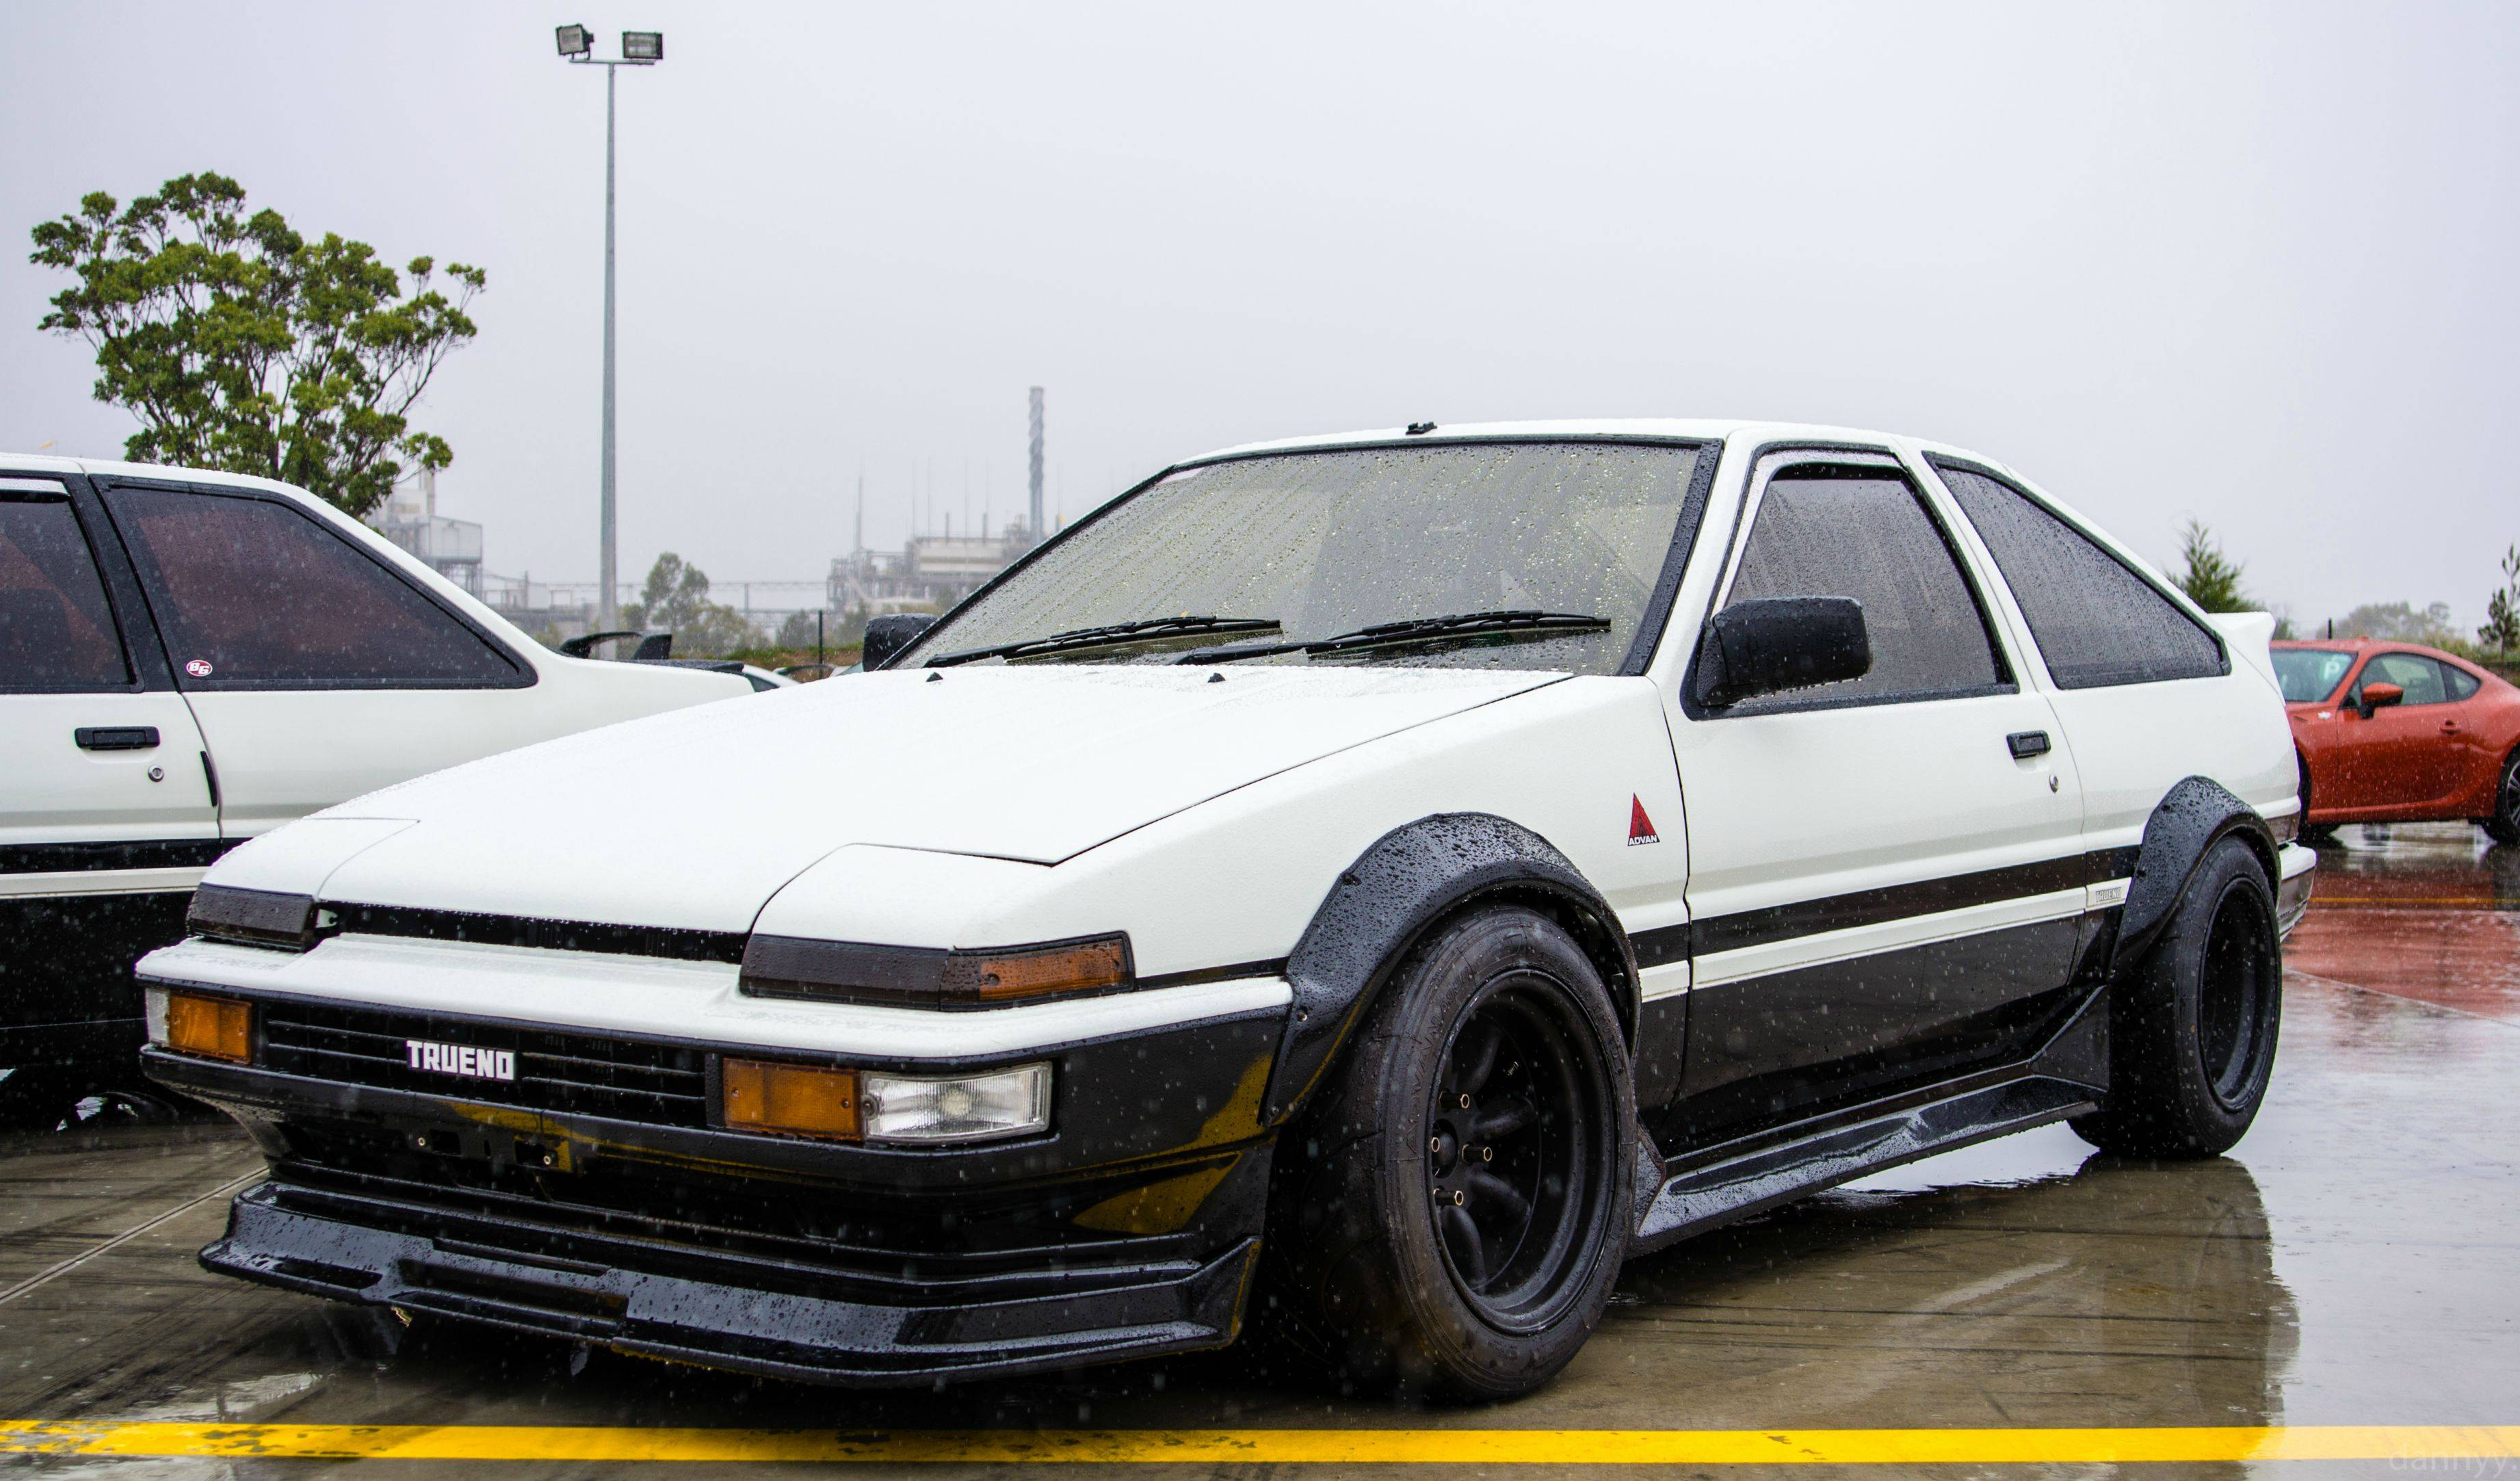 download Toyota AE86 wallpapers Vehicles HQ Toyota AE86 3684x2165